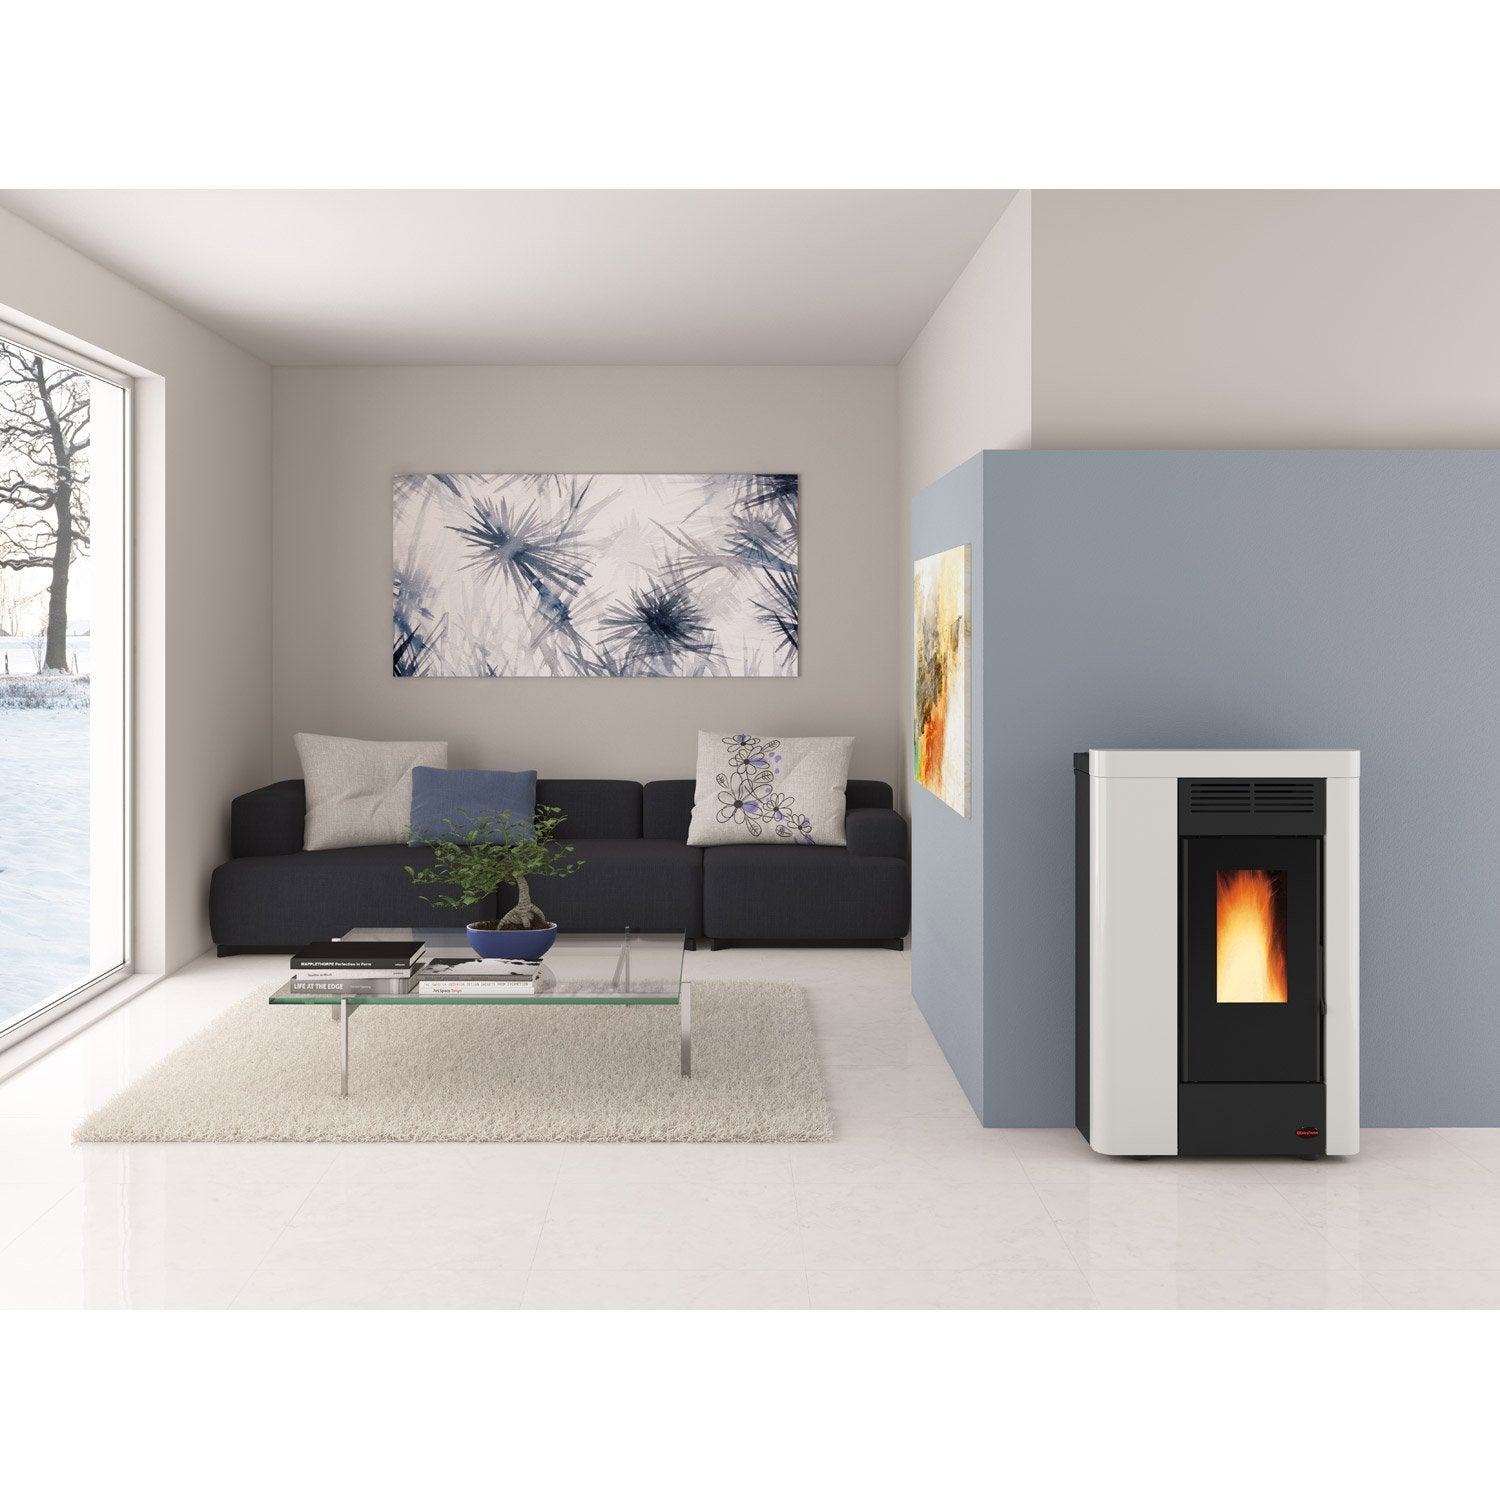 po le granul s extraflame annabella blanc 8 kw leroy merlin. Black Bedroom Furniture Sets. Home Design Ideas